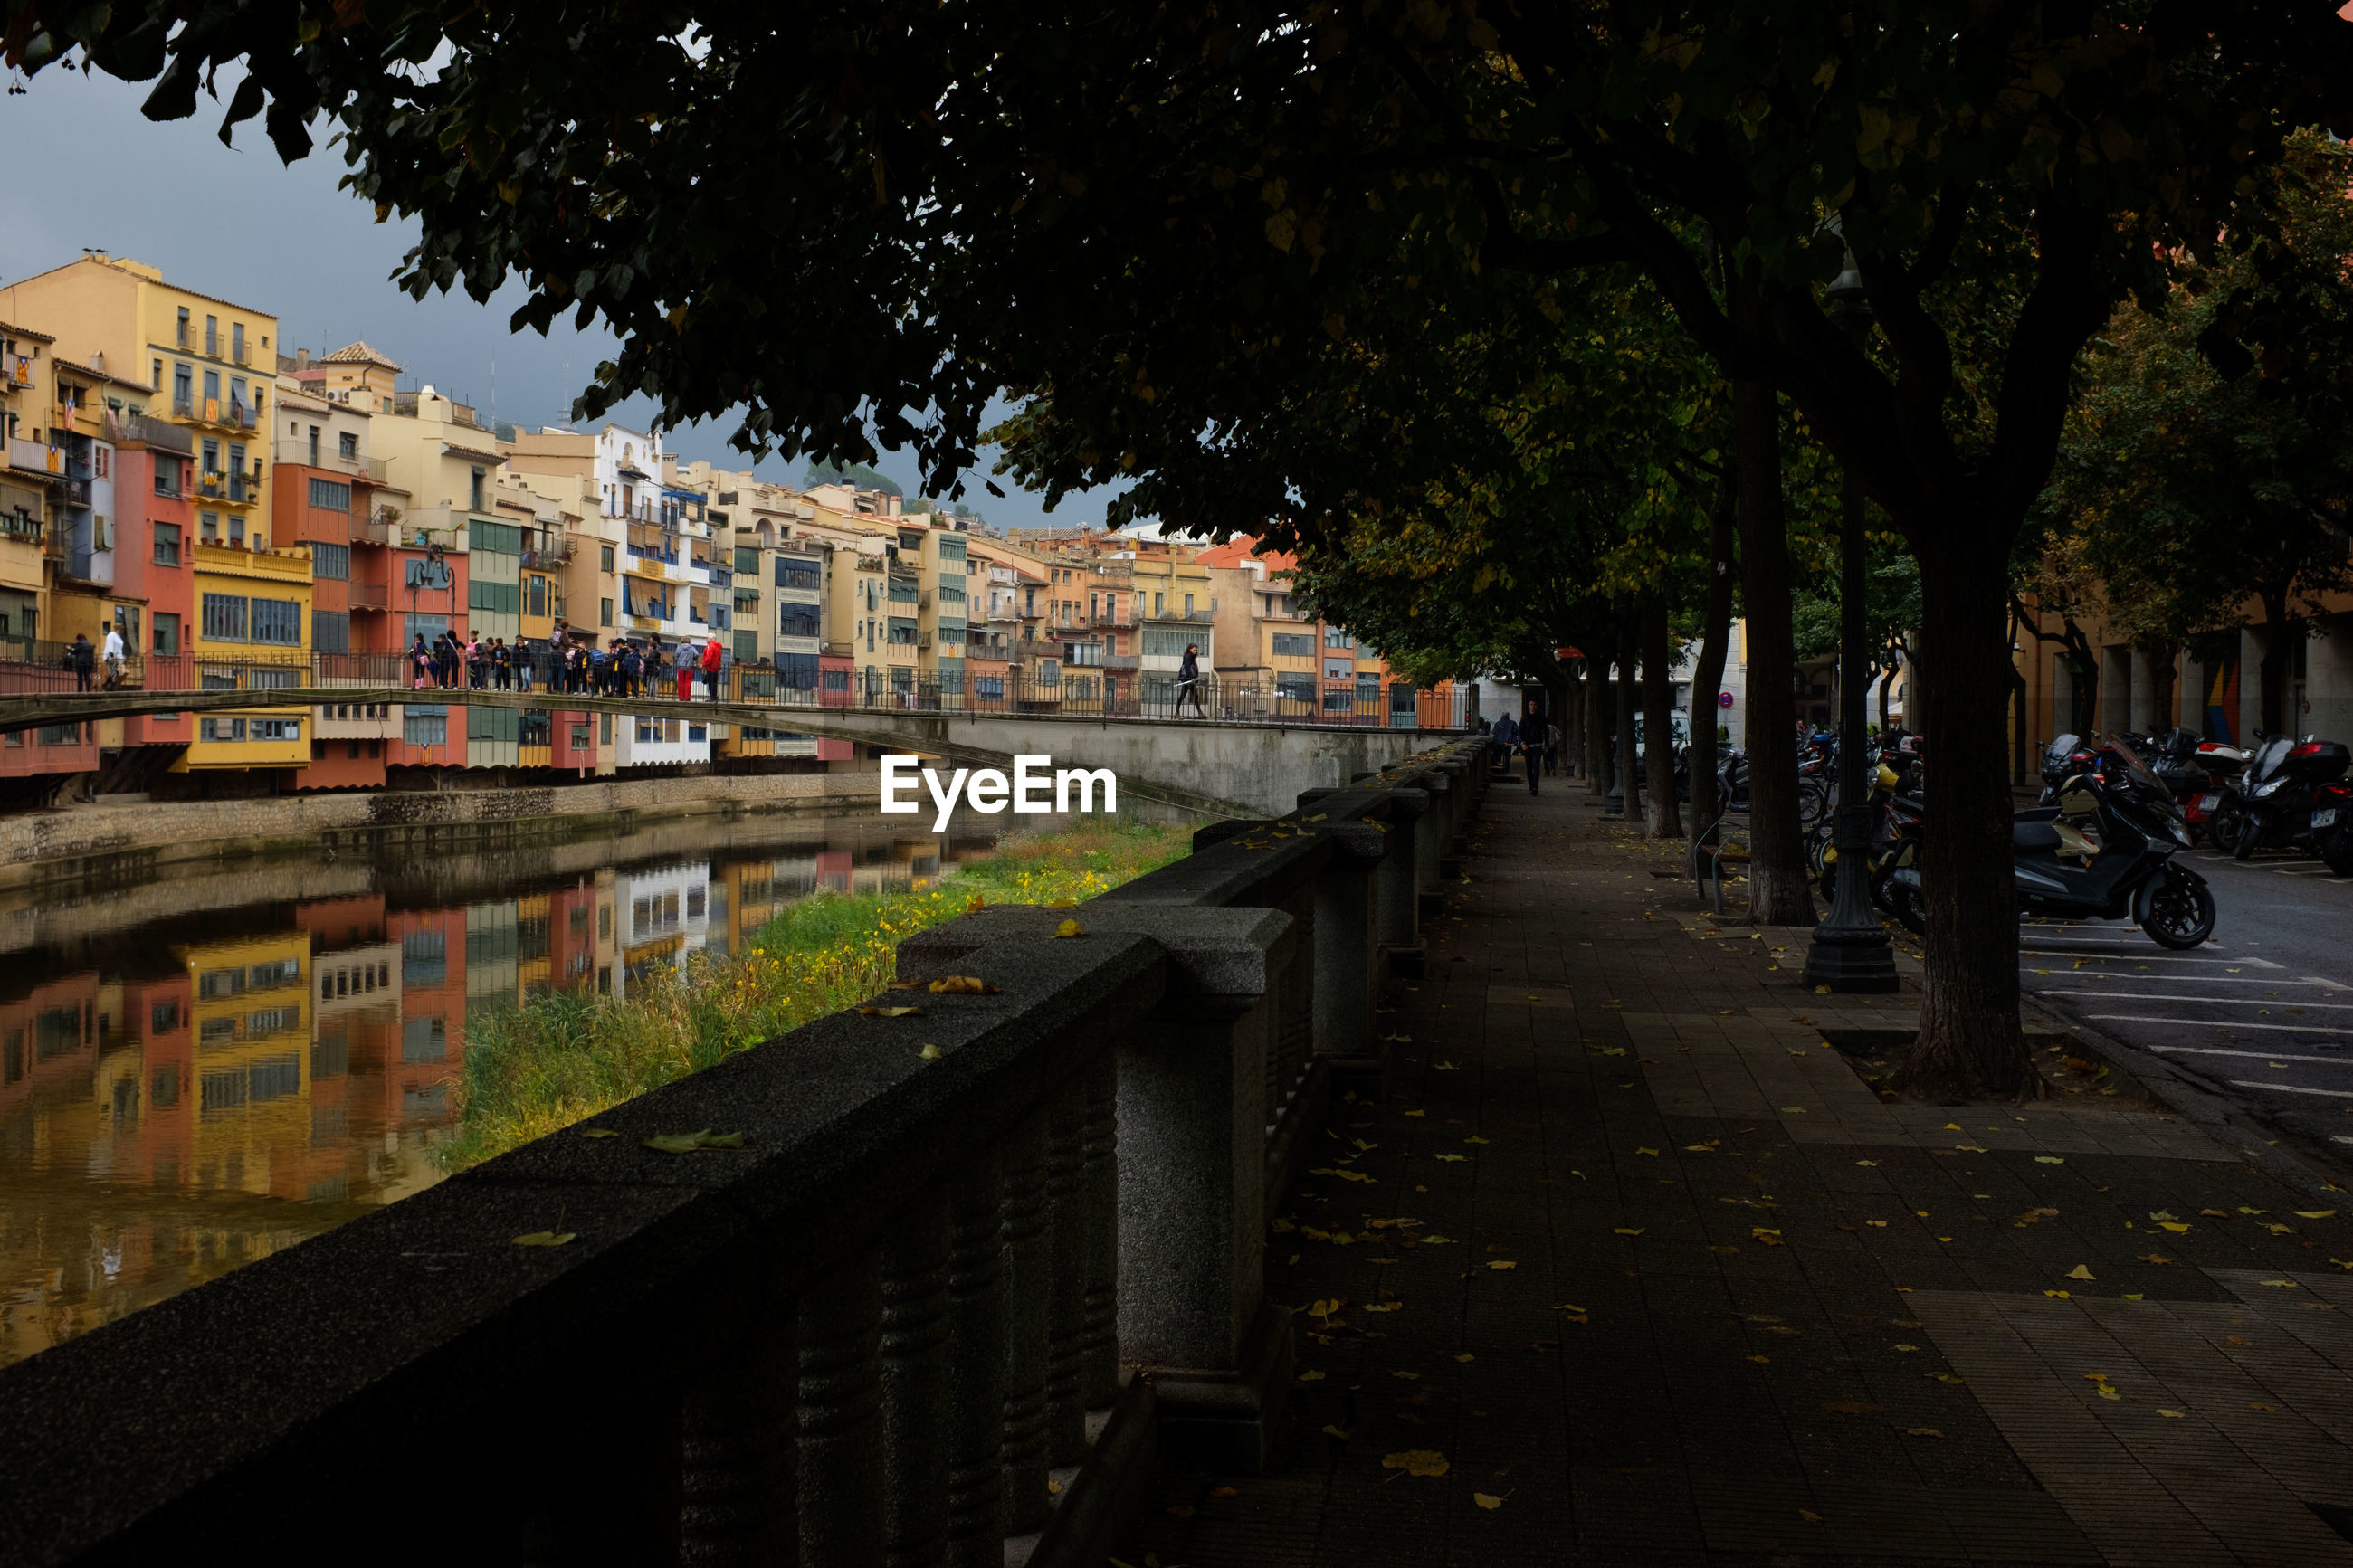 View of footpath by canal in city